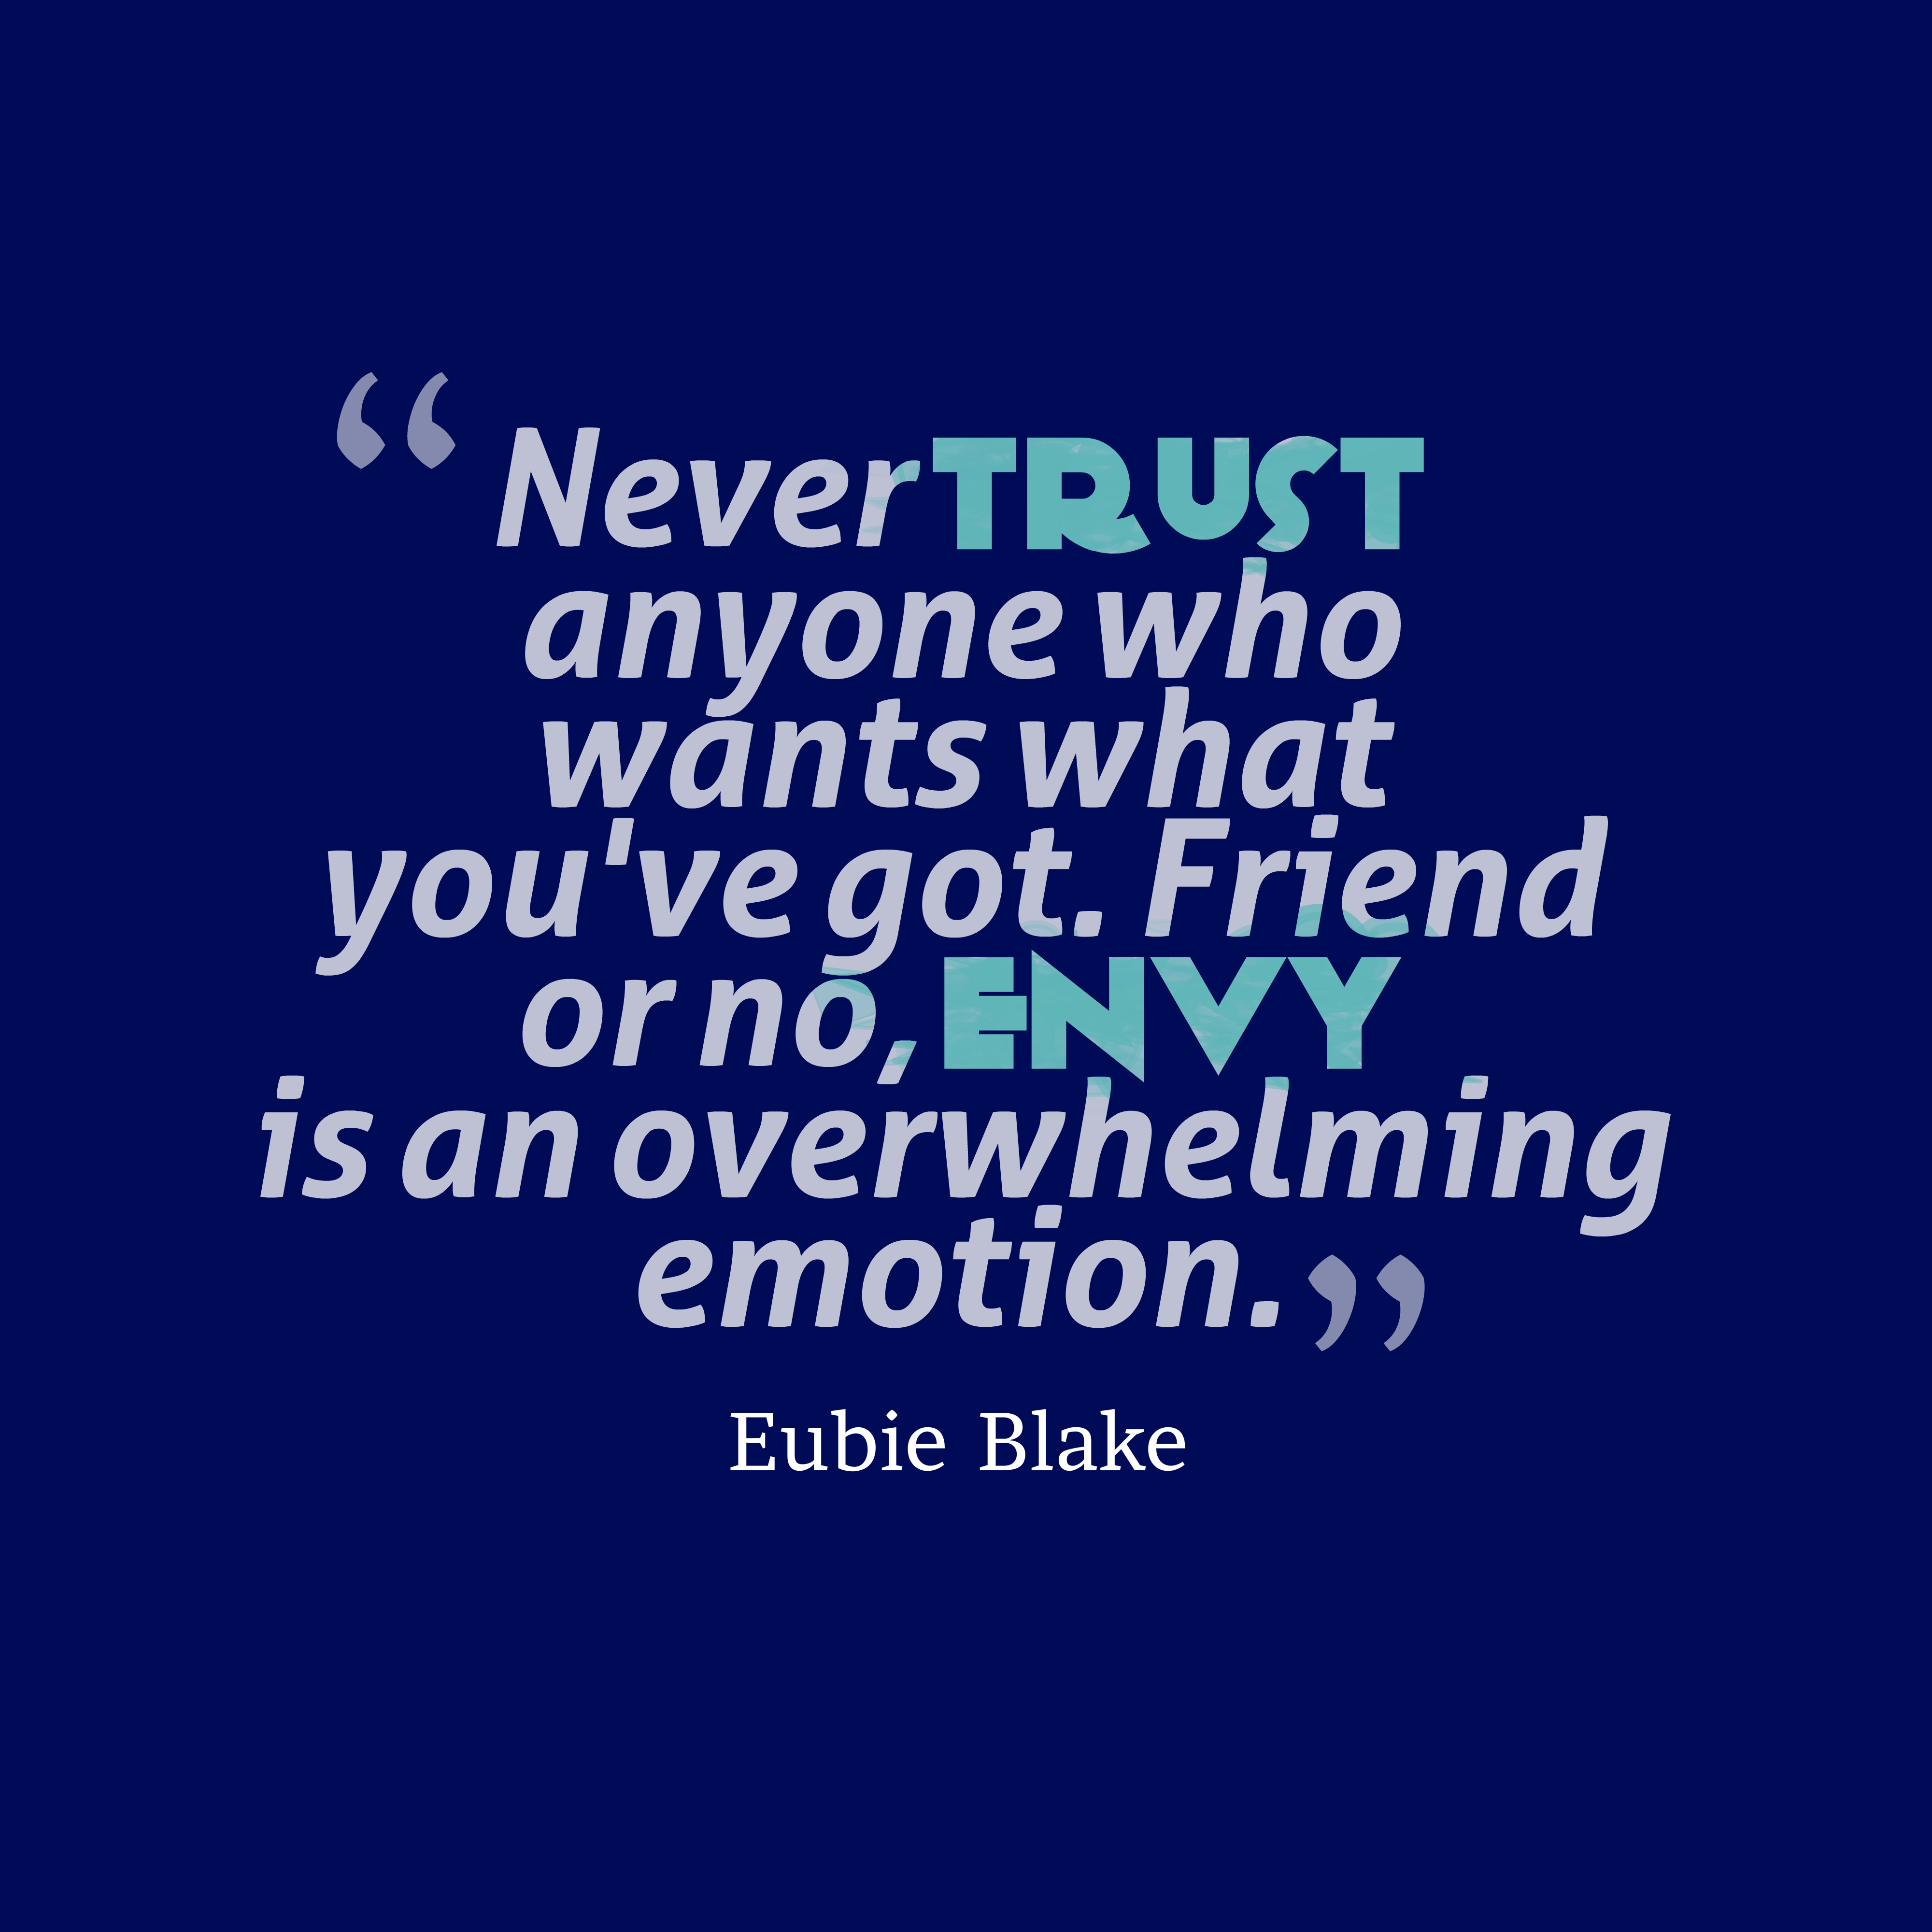 how to win a friend trust back